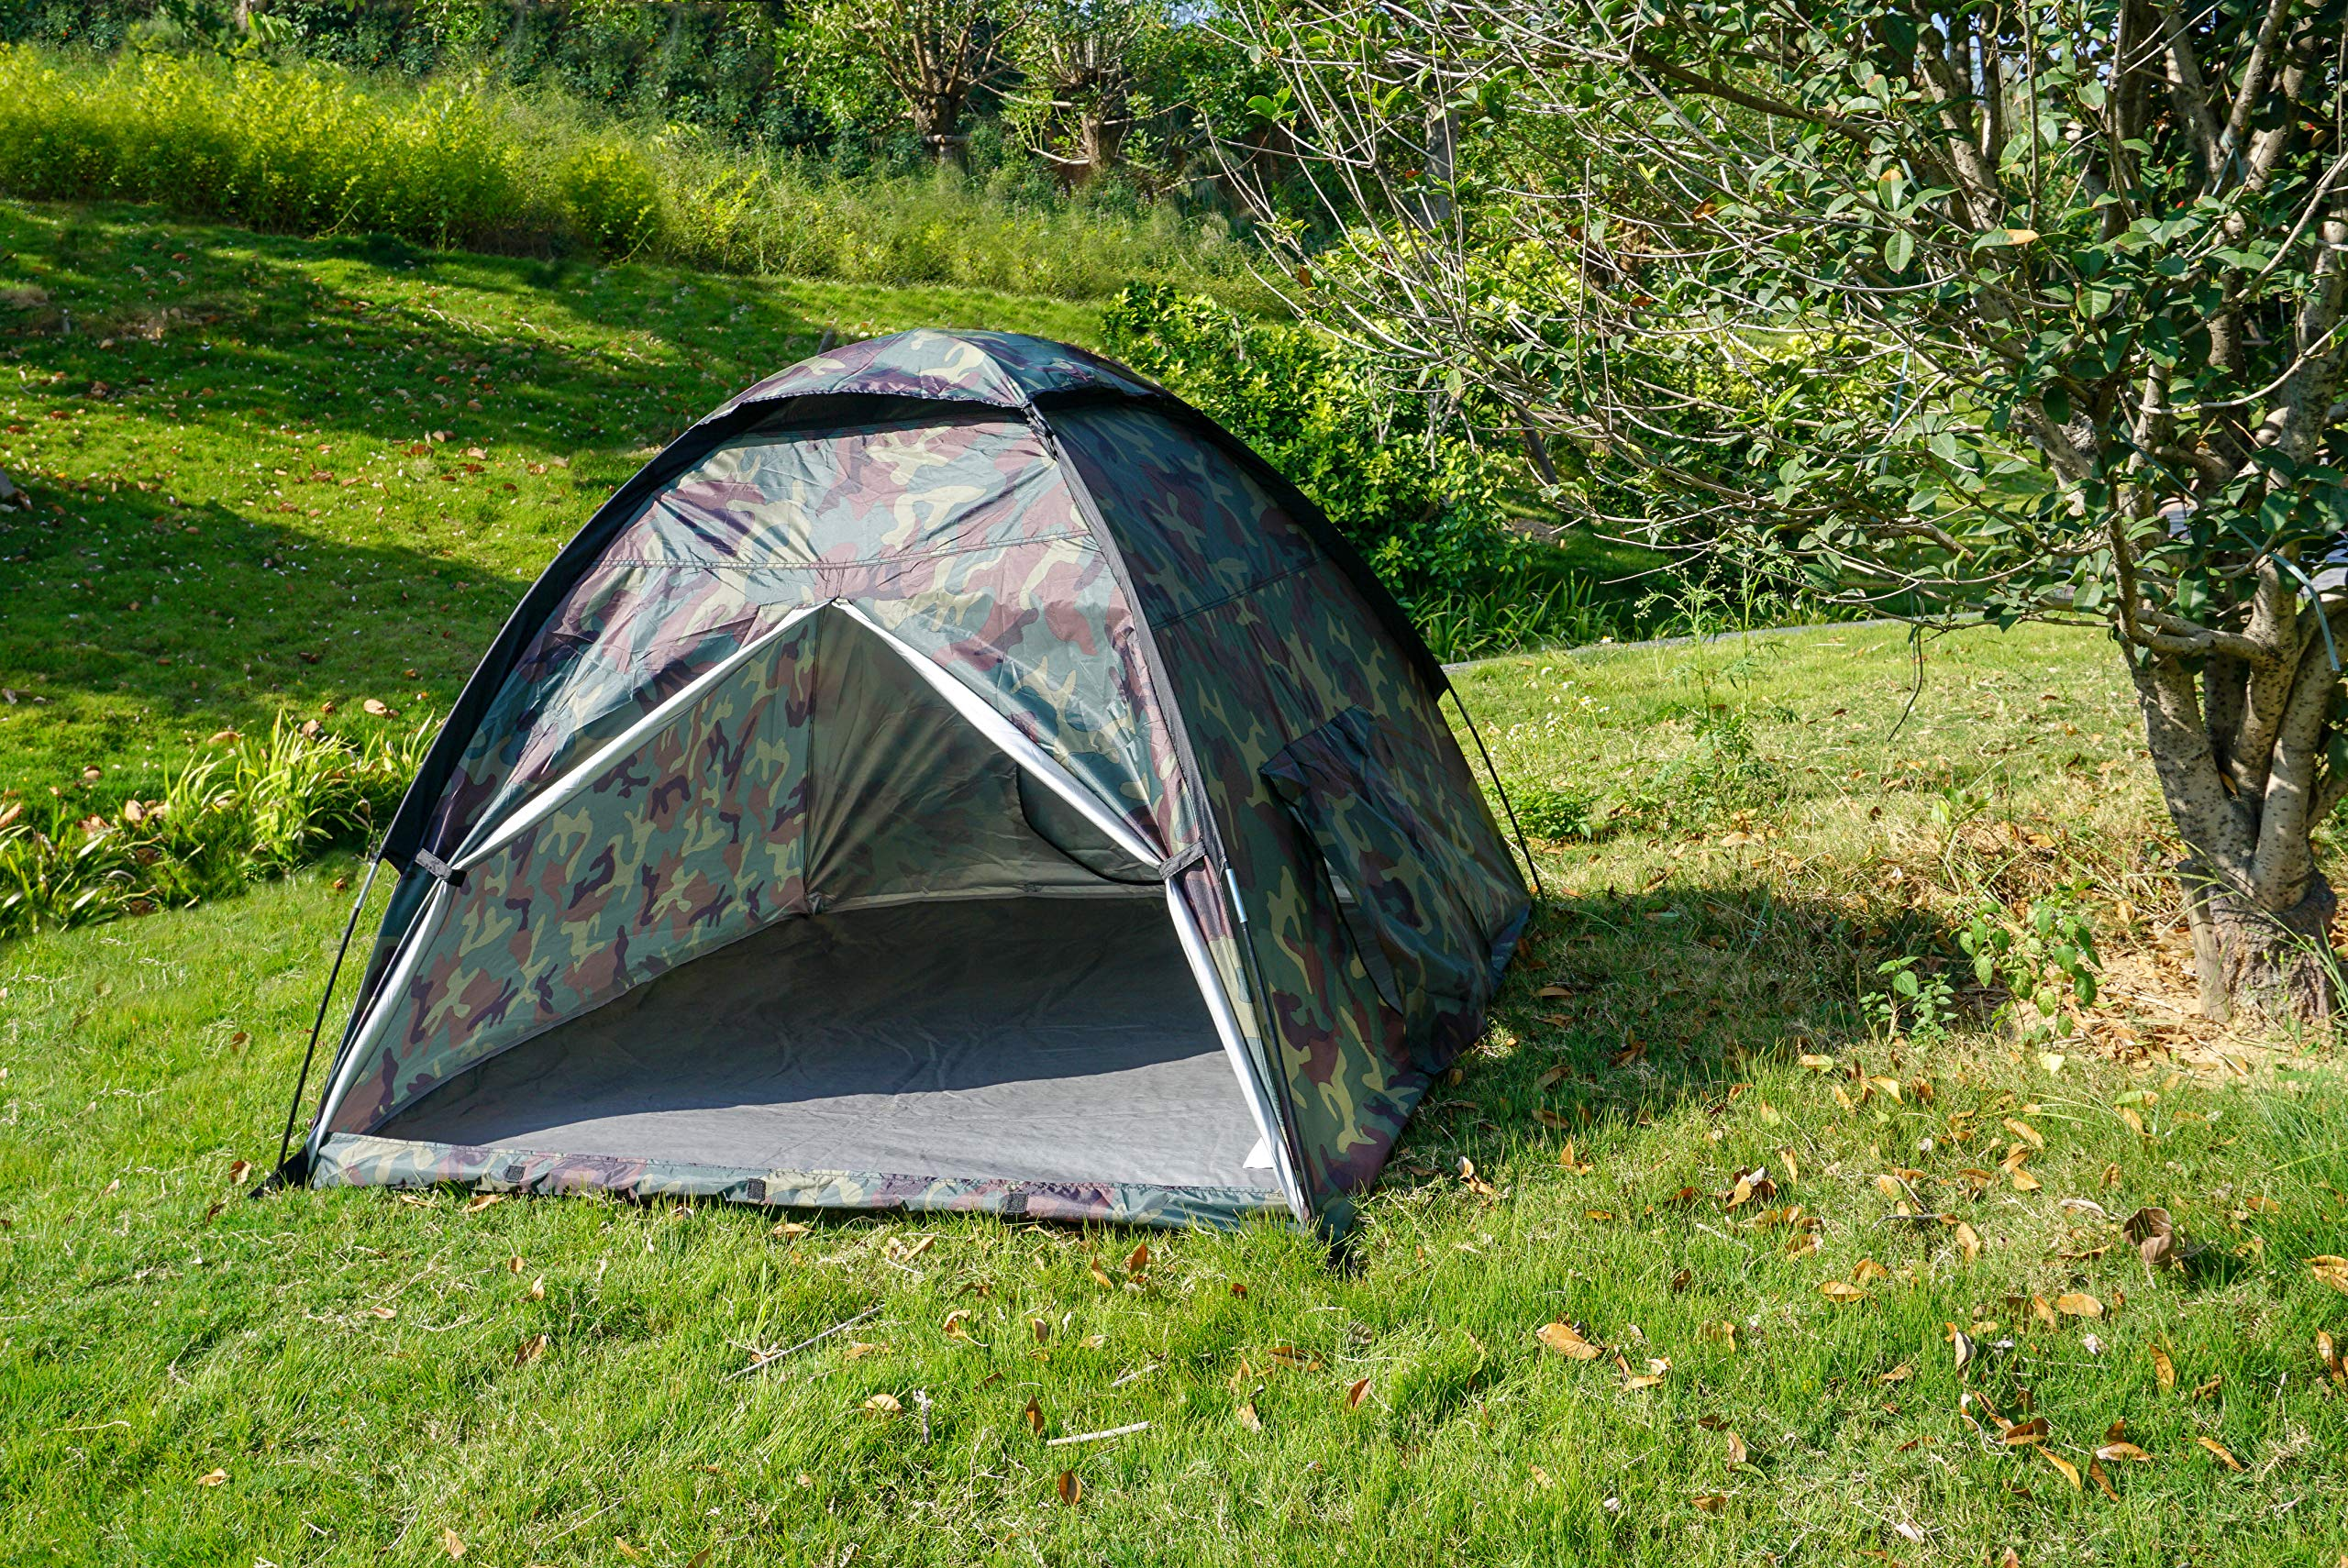 NARMAY Play Tent Camouflage Dome Tent for Kids Indoor / Outdoor Fun - 60 x 60 x 44 inch by NARMAY (Image #2)